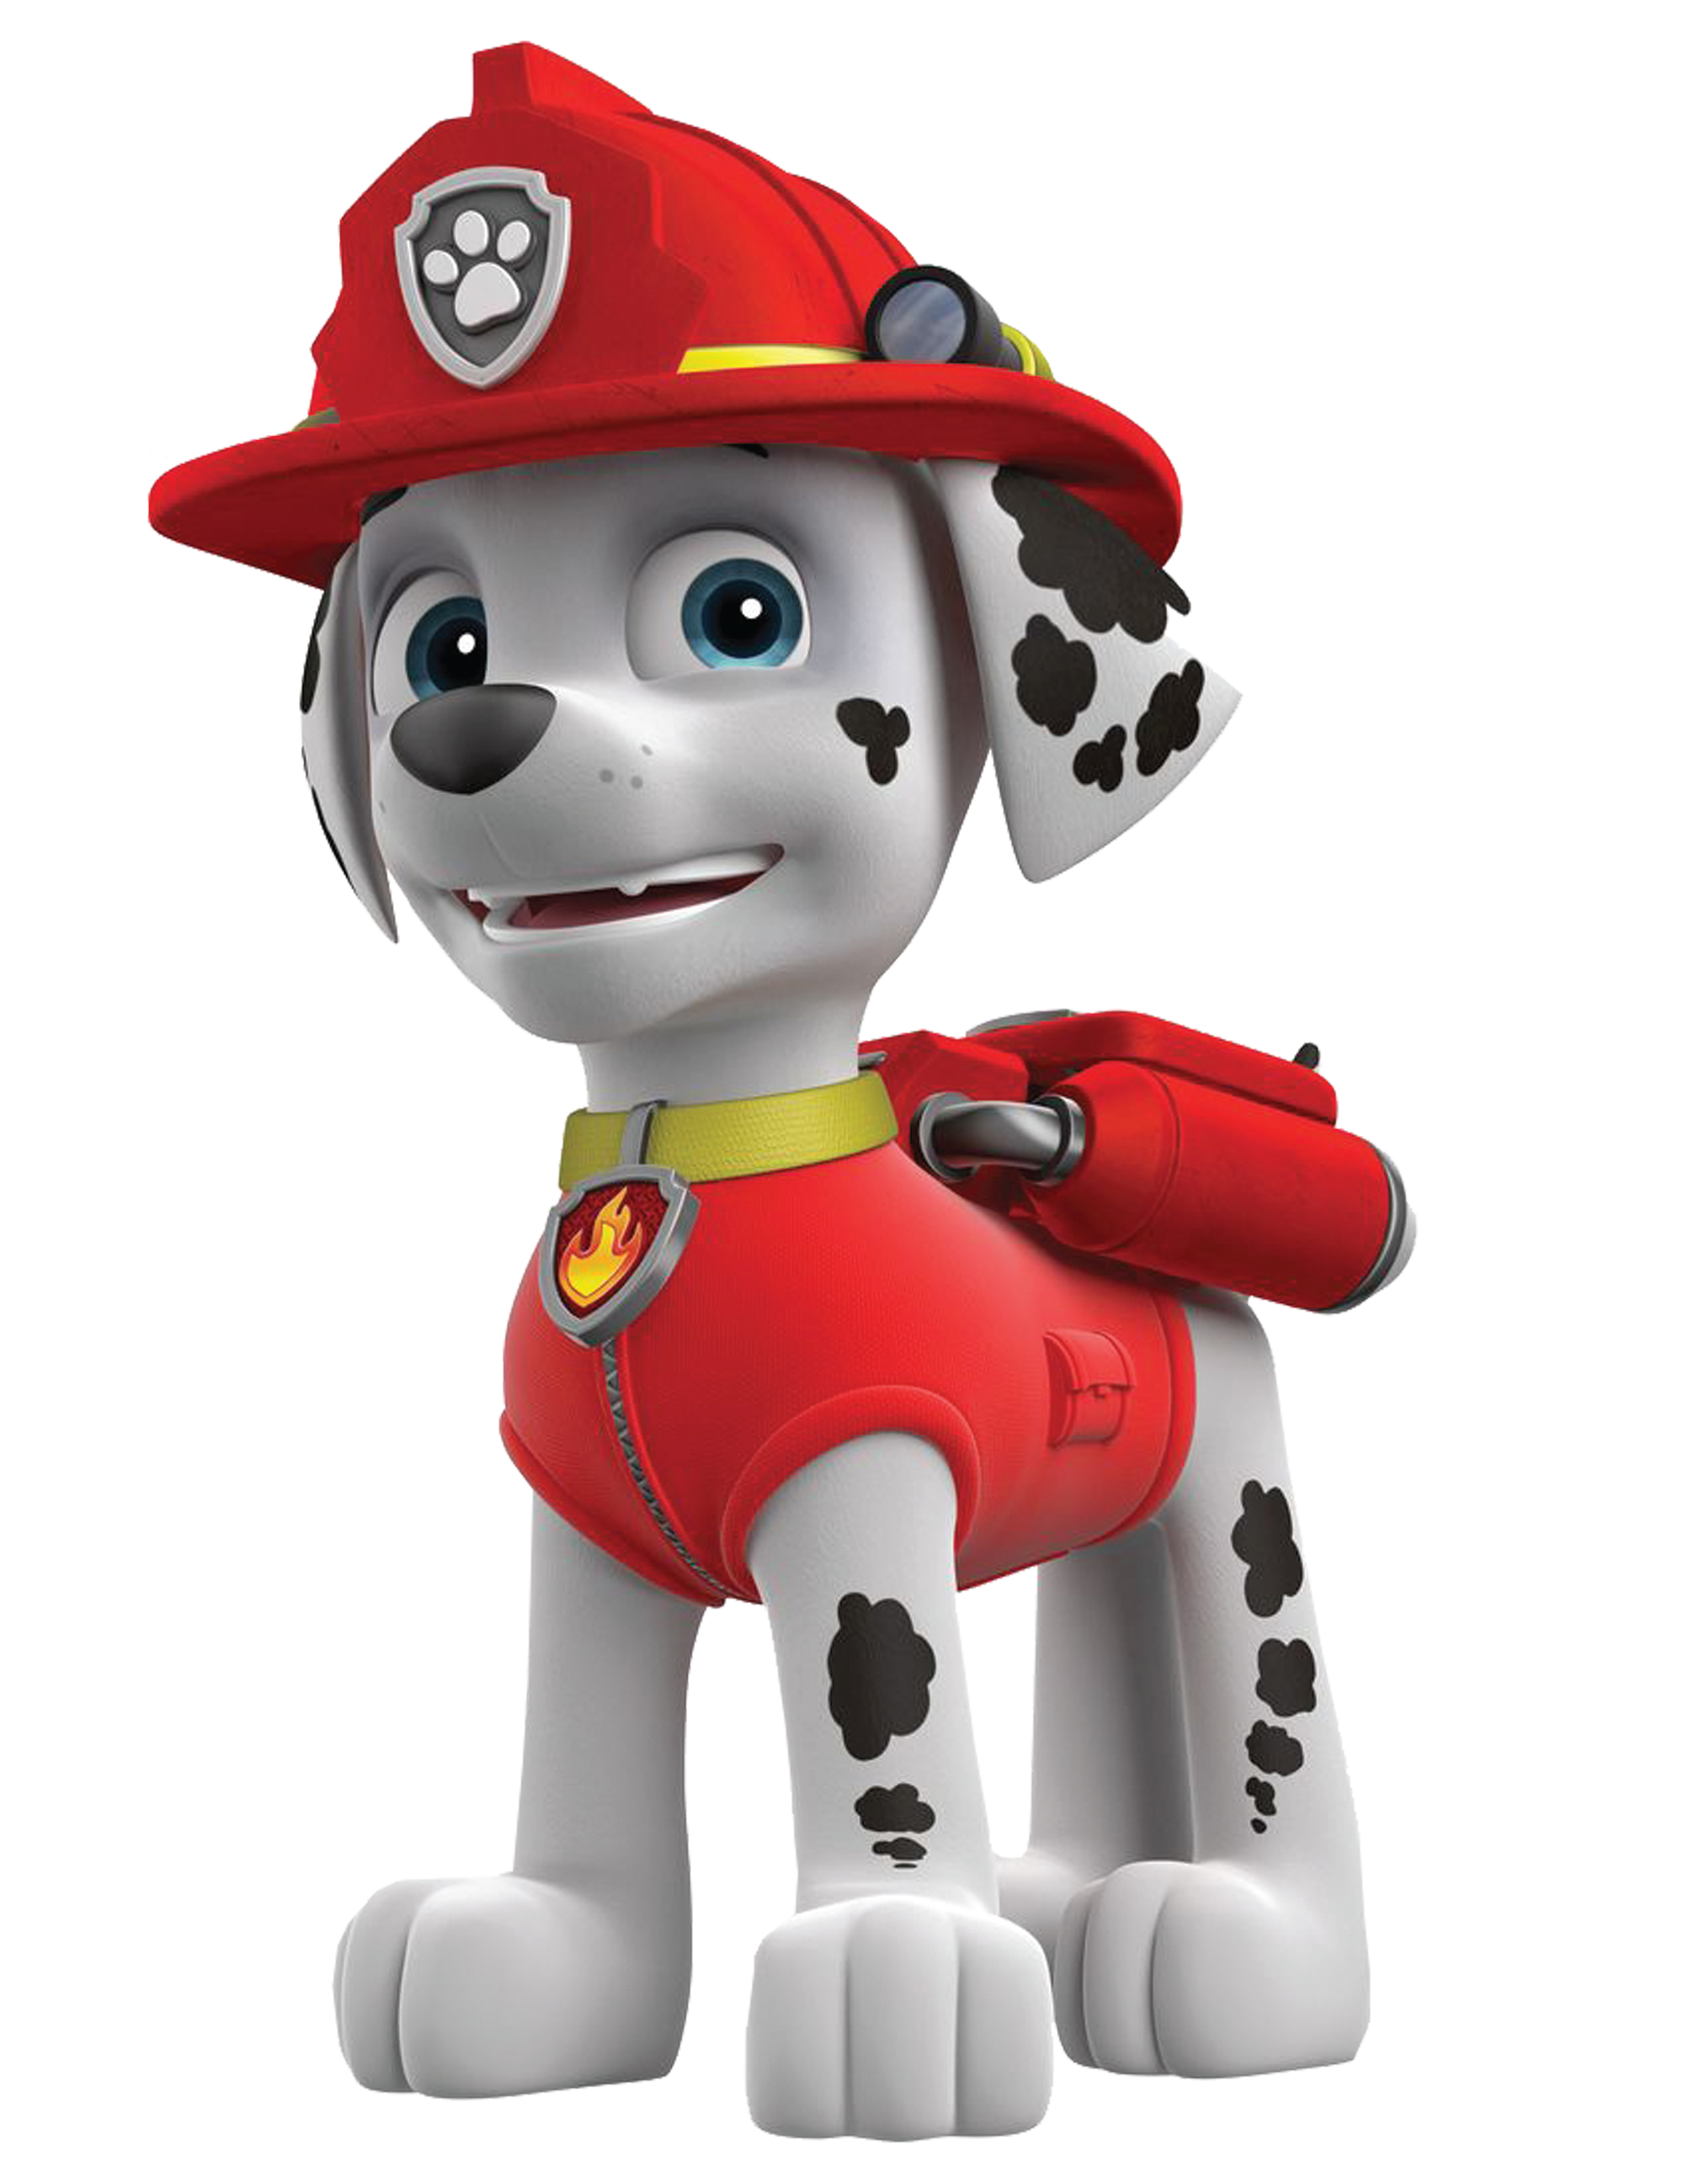 Marshall Paw Patrol Png Clipart 6.